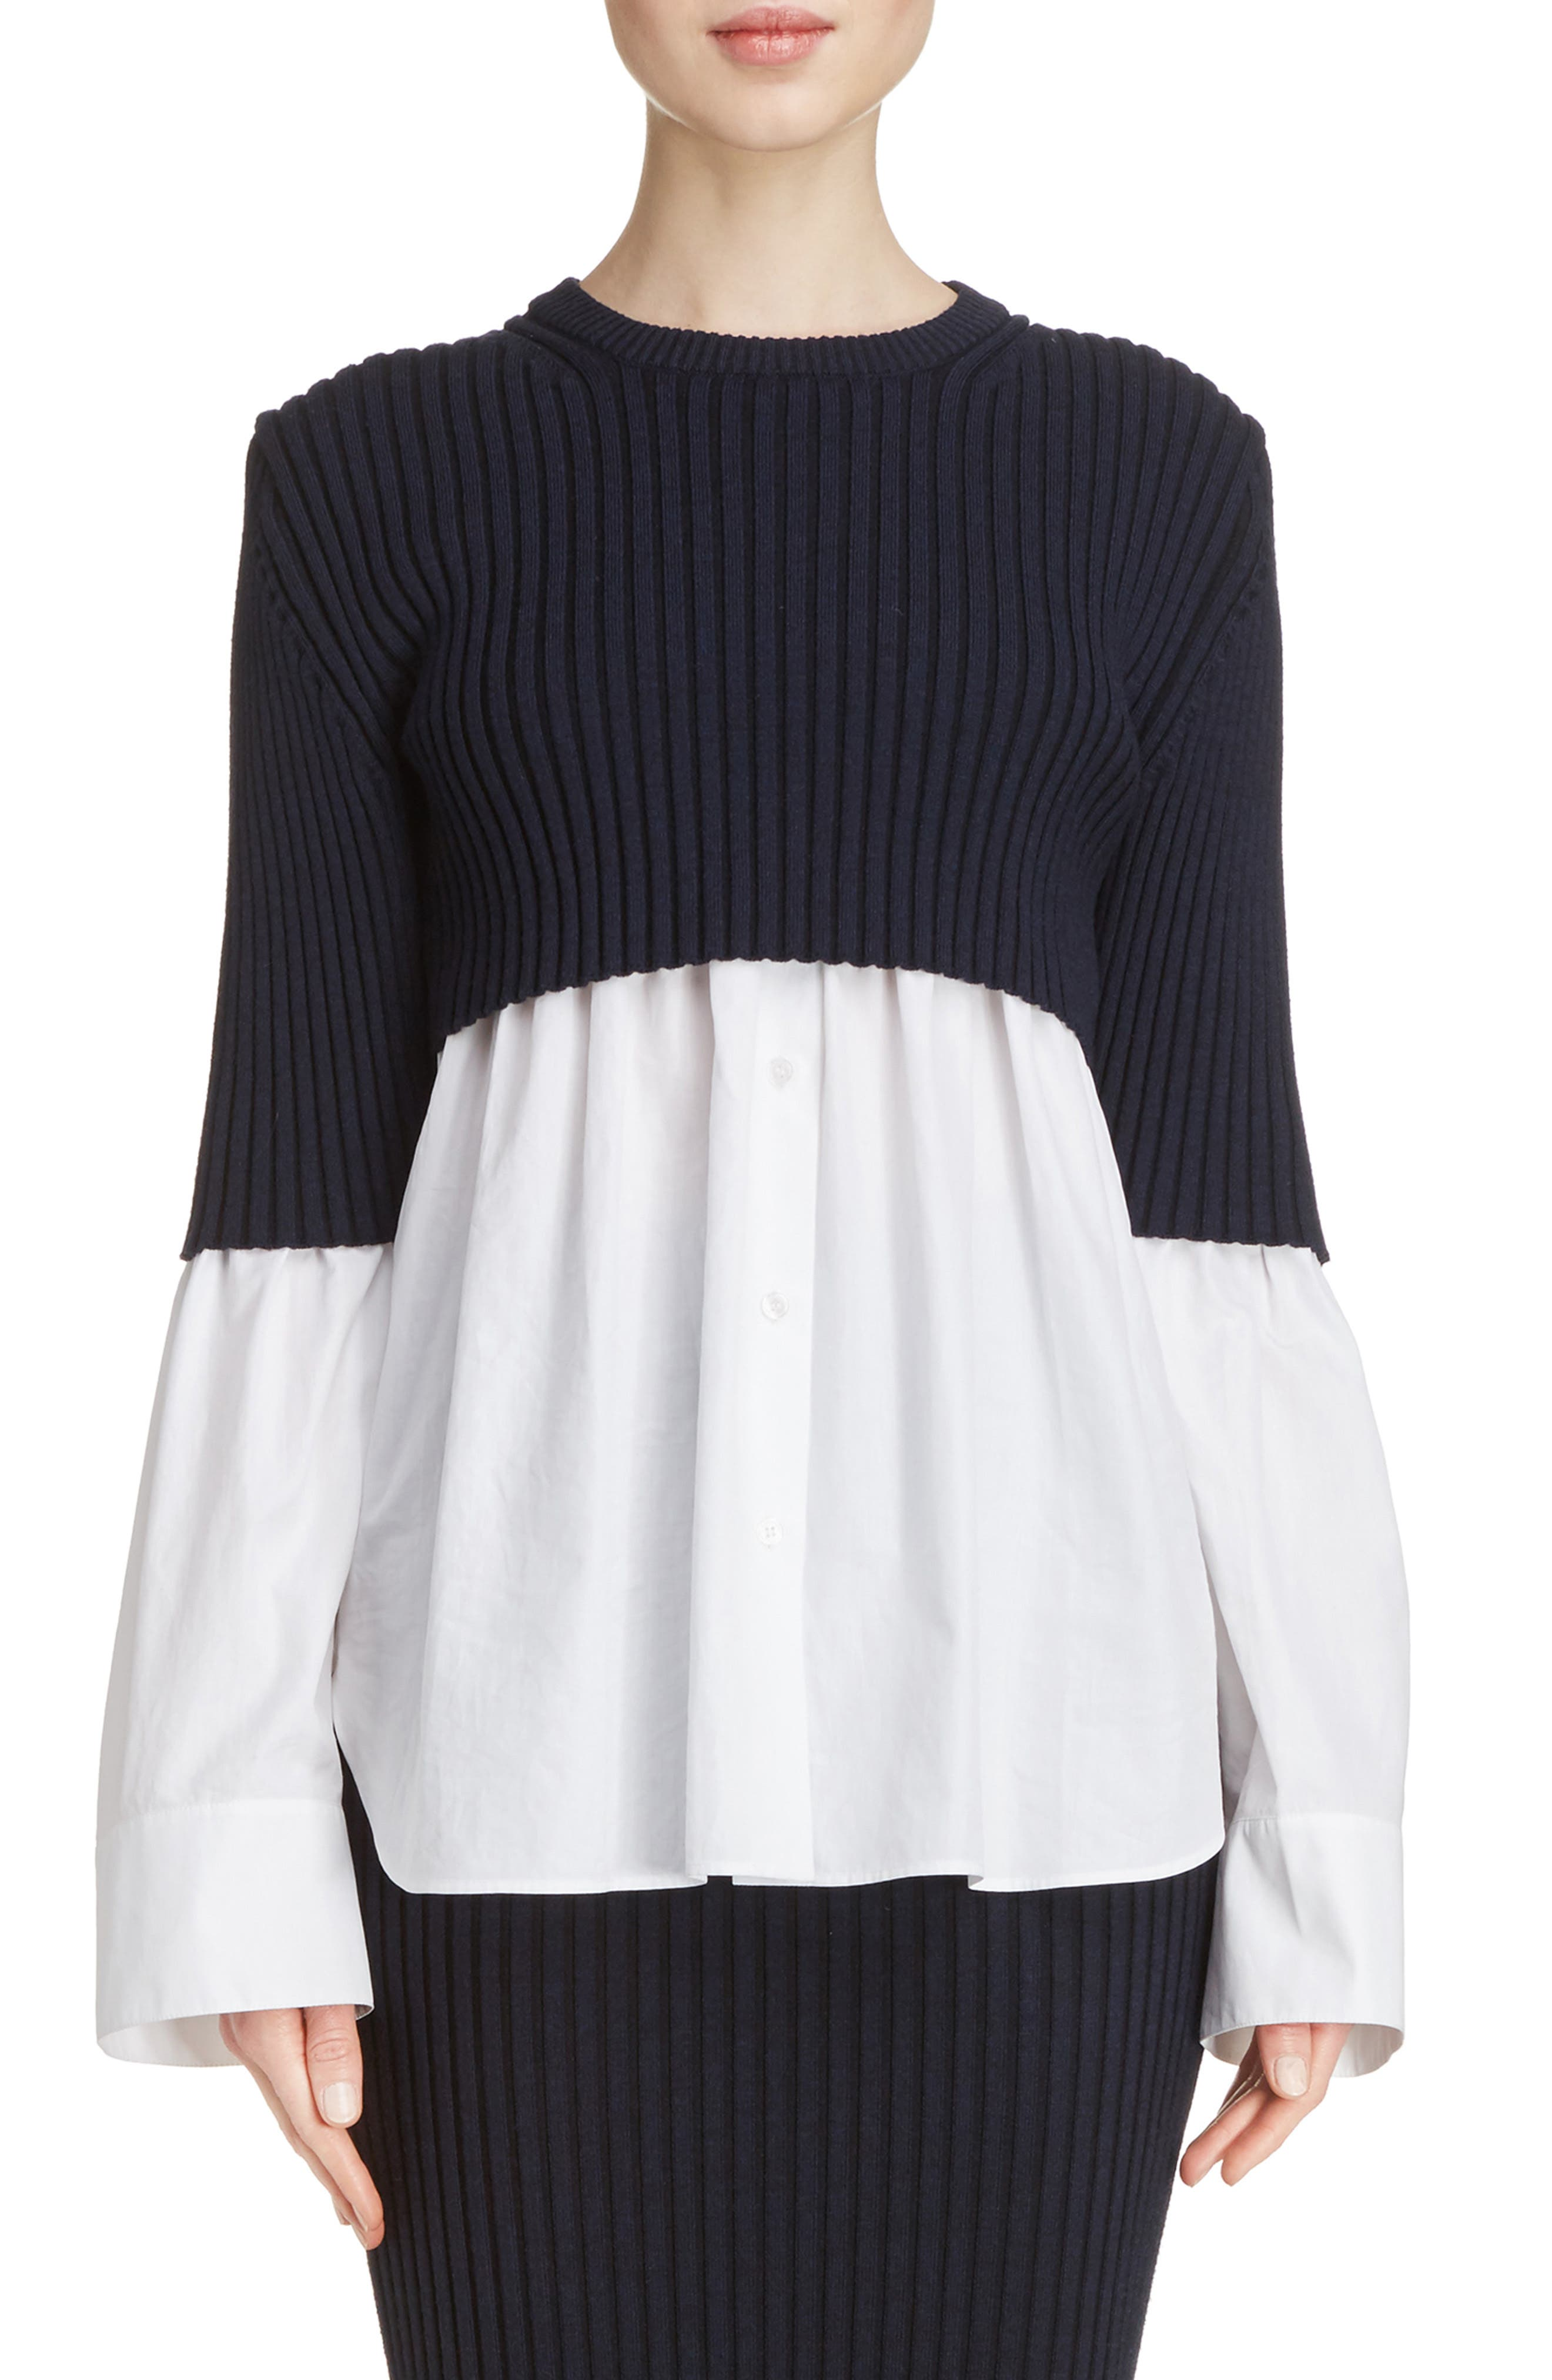 KENZO Knit Overlay Cotton Blouse